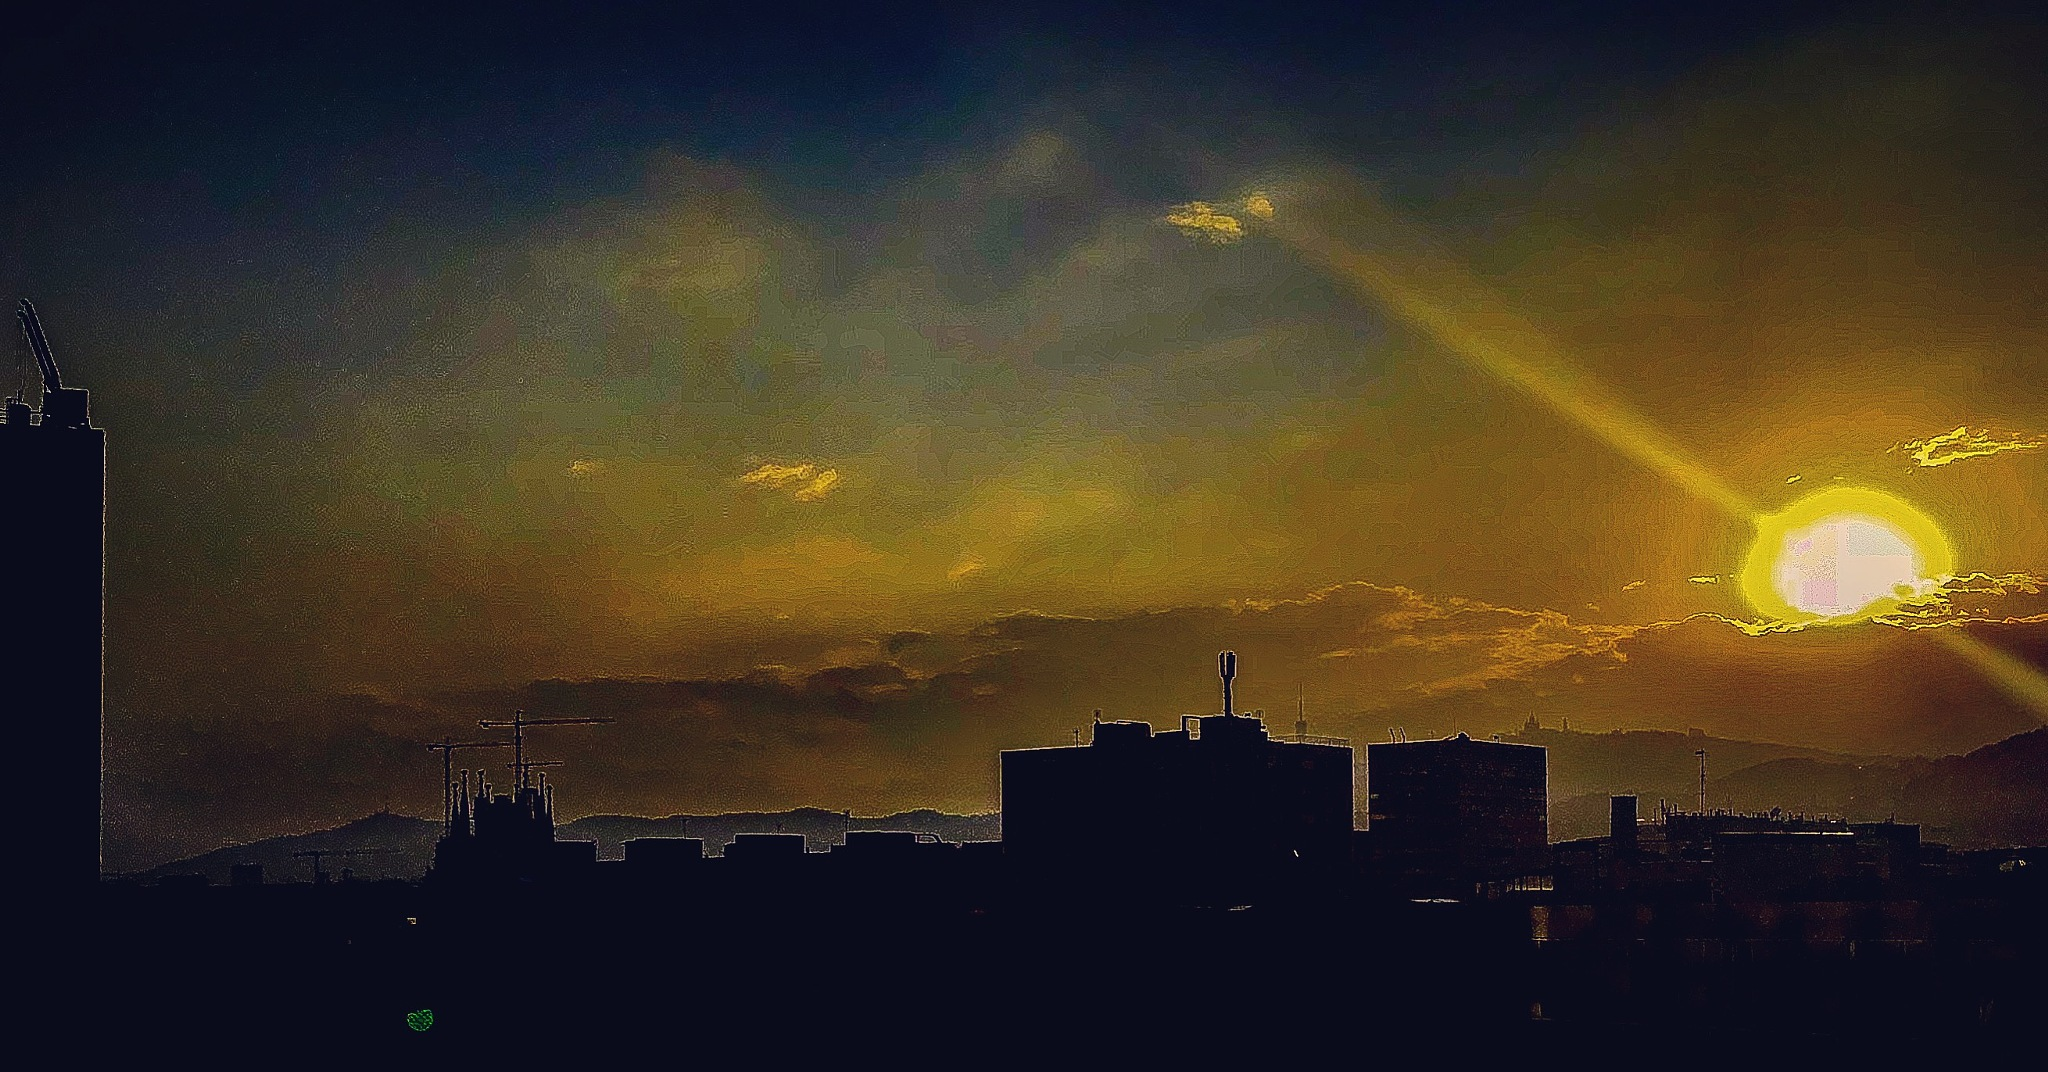 Sunset in Barcelona now  by Hector Lopez